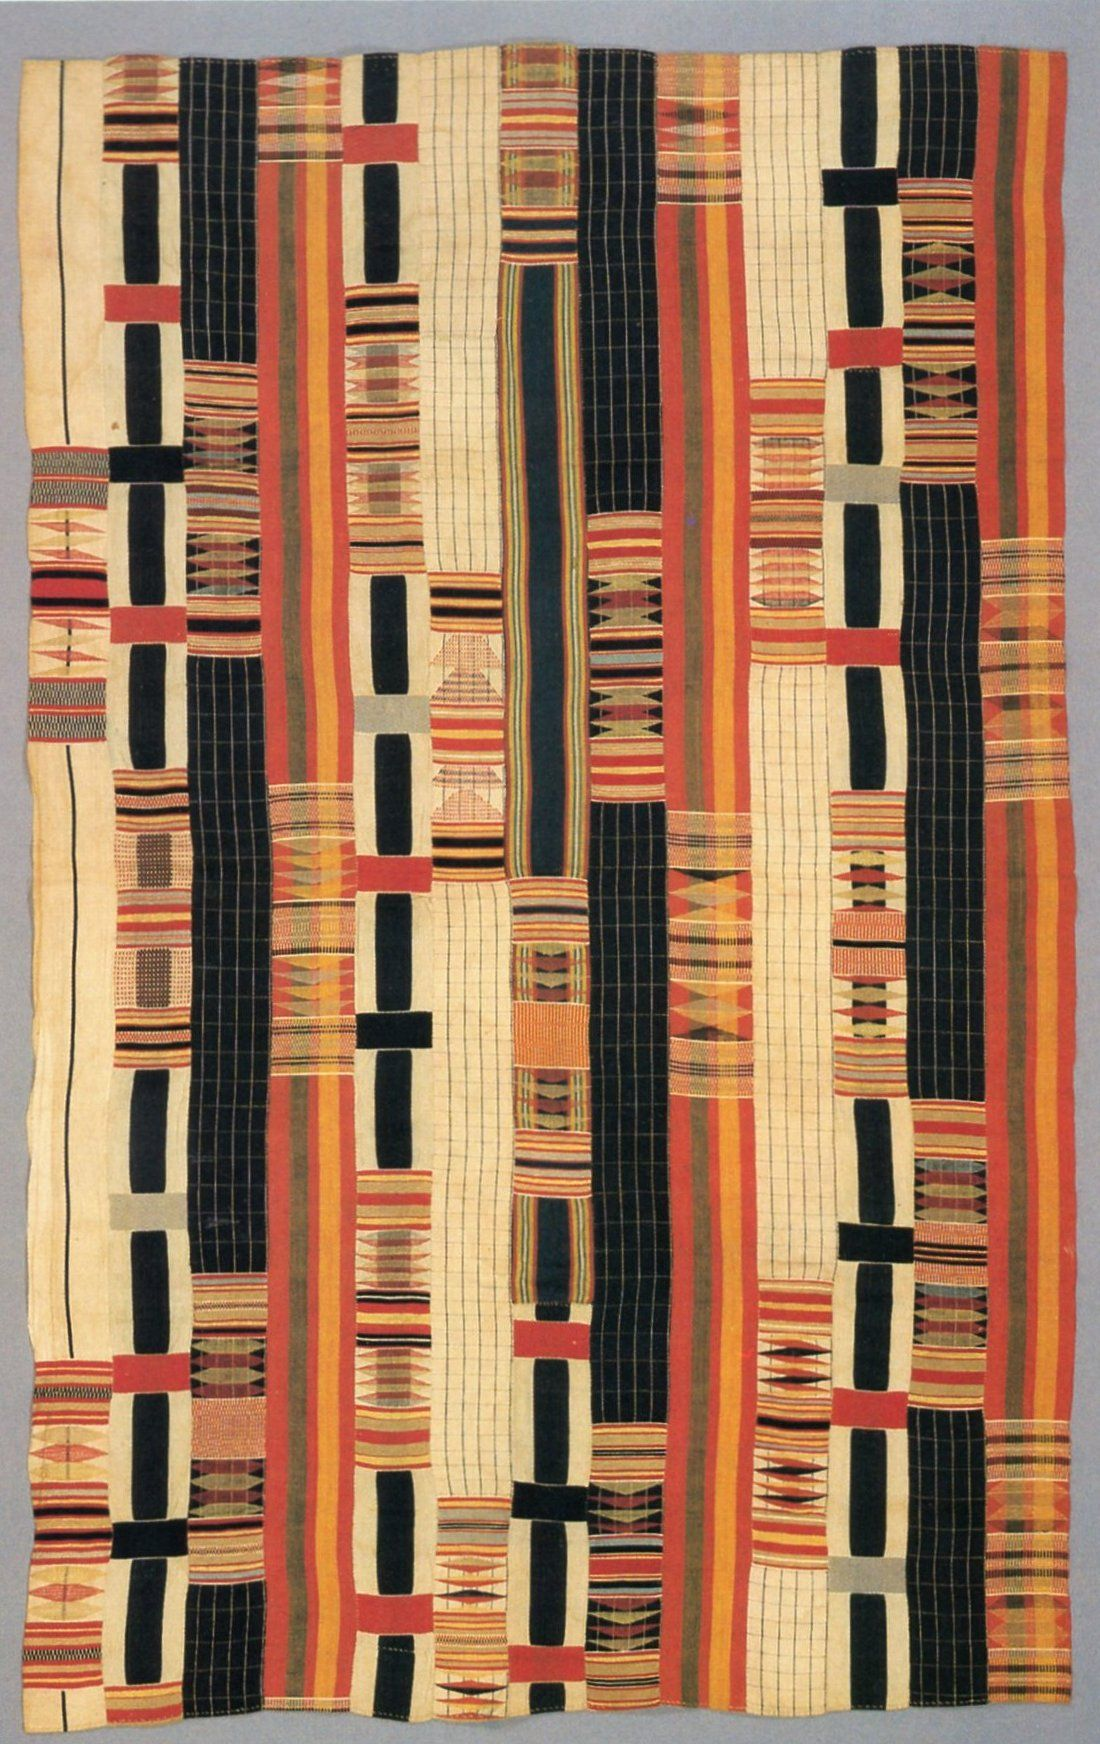 Nineteenth Century Kente From The Smithsonian Lamb Collection